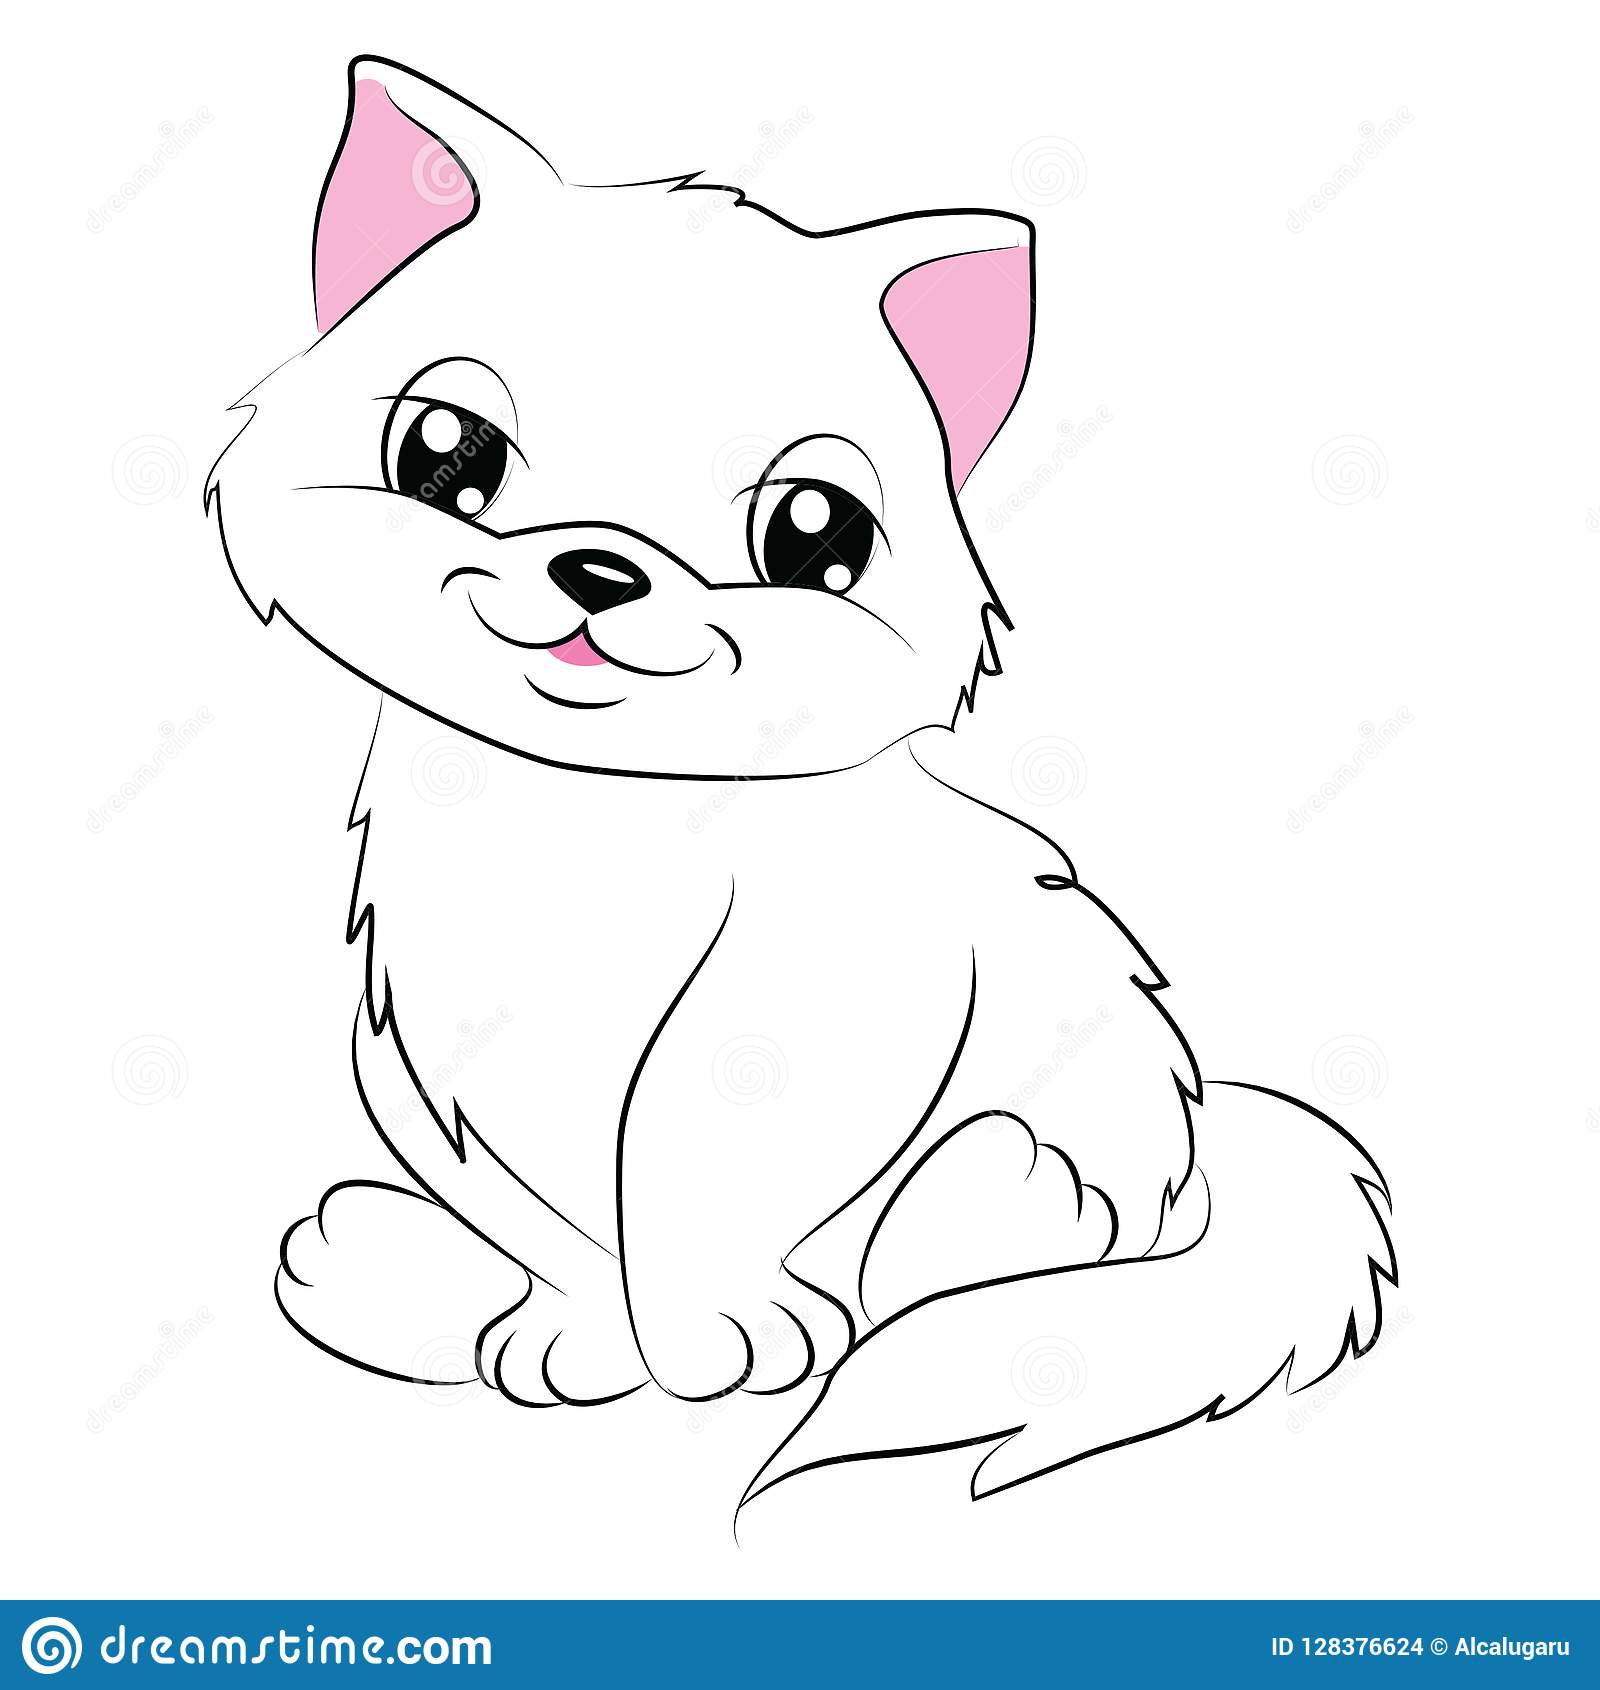 Cartoon Cute Cat Coloring Page Stock Vector - Illustration ...